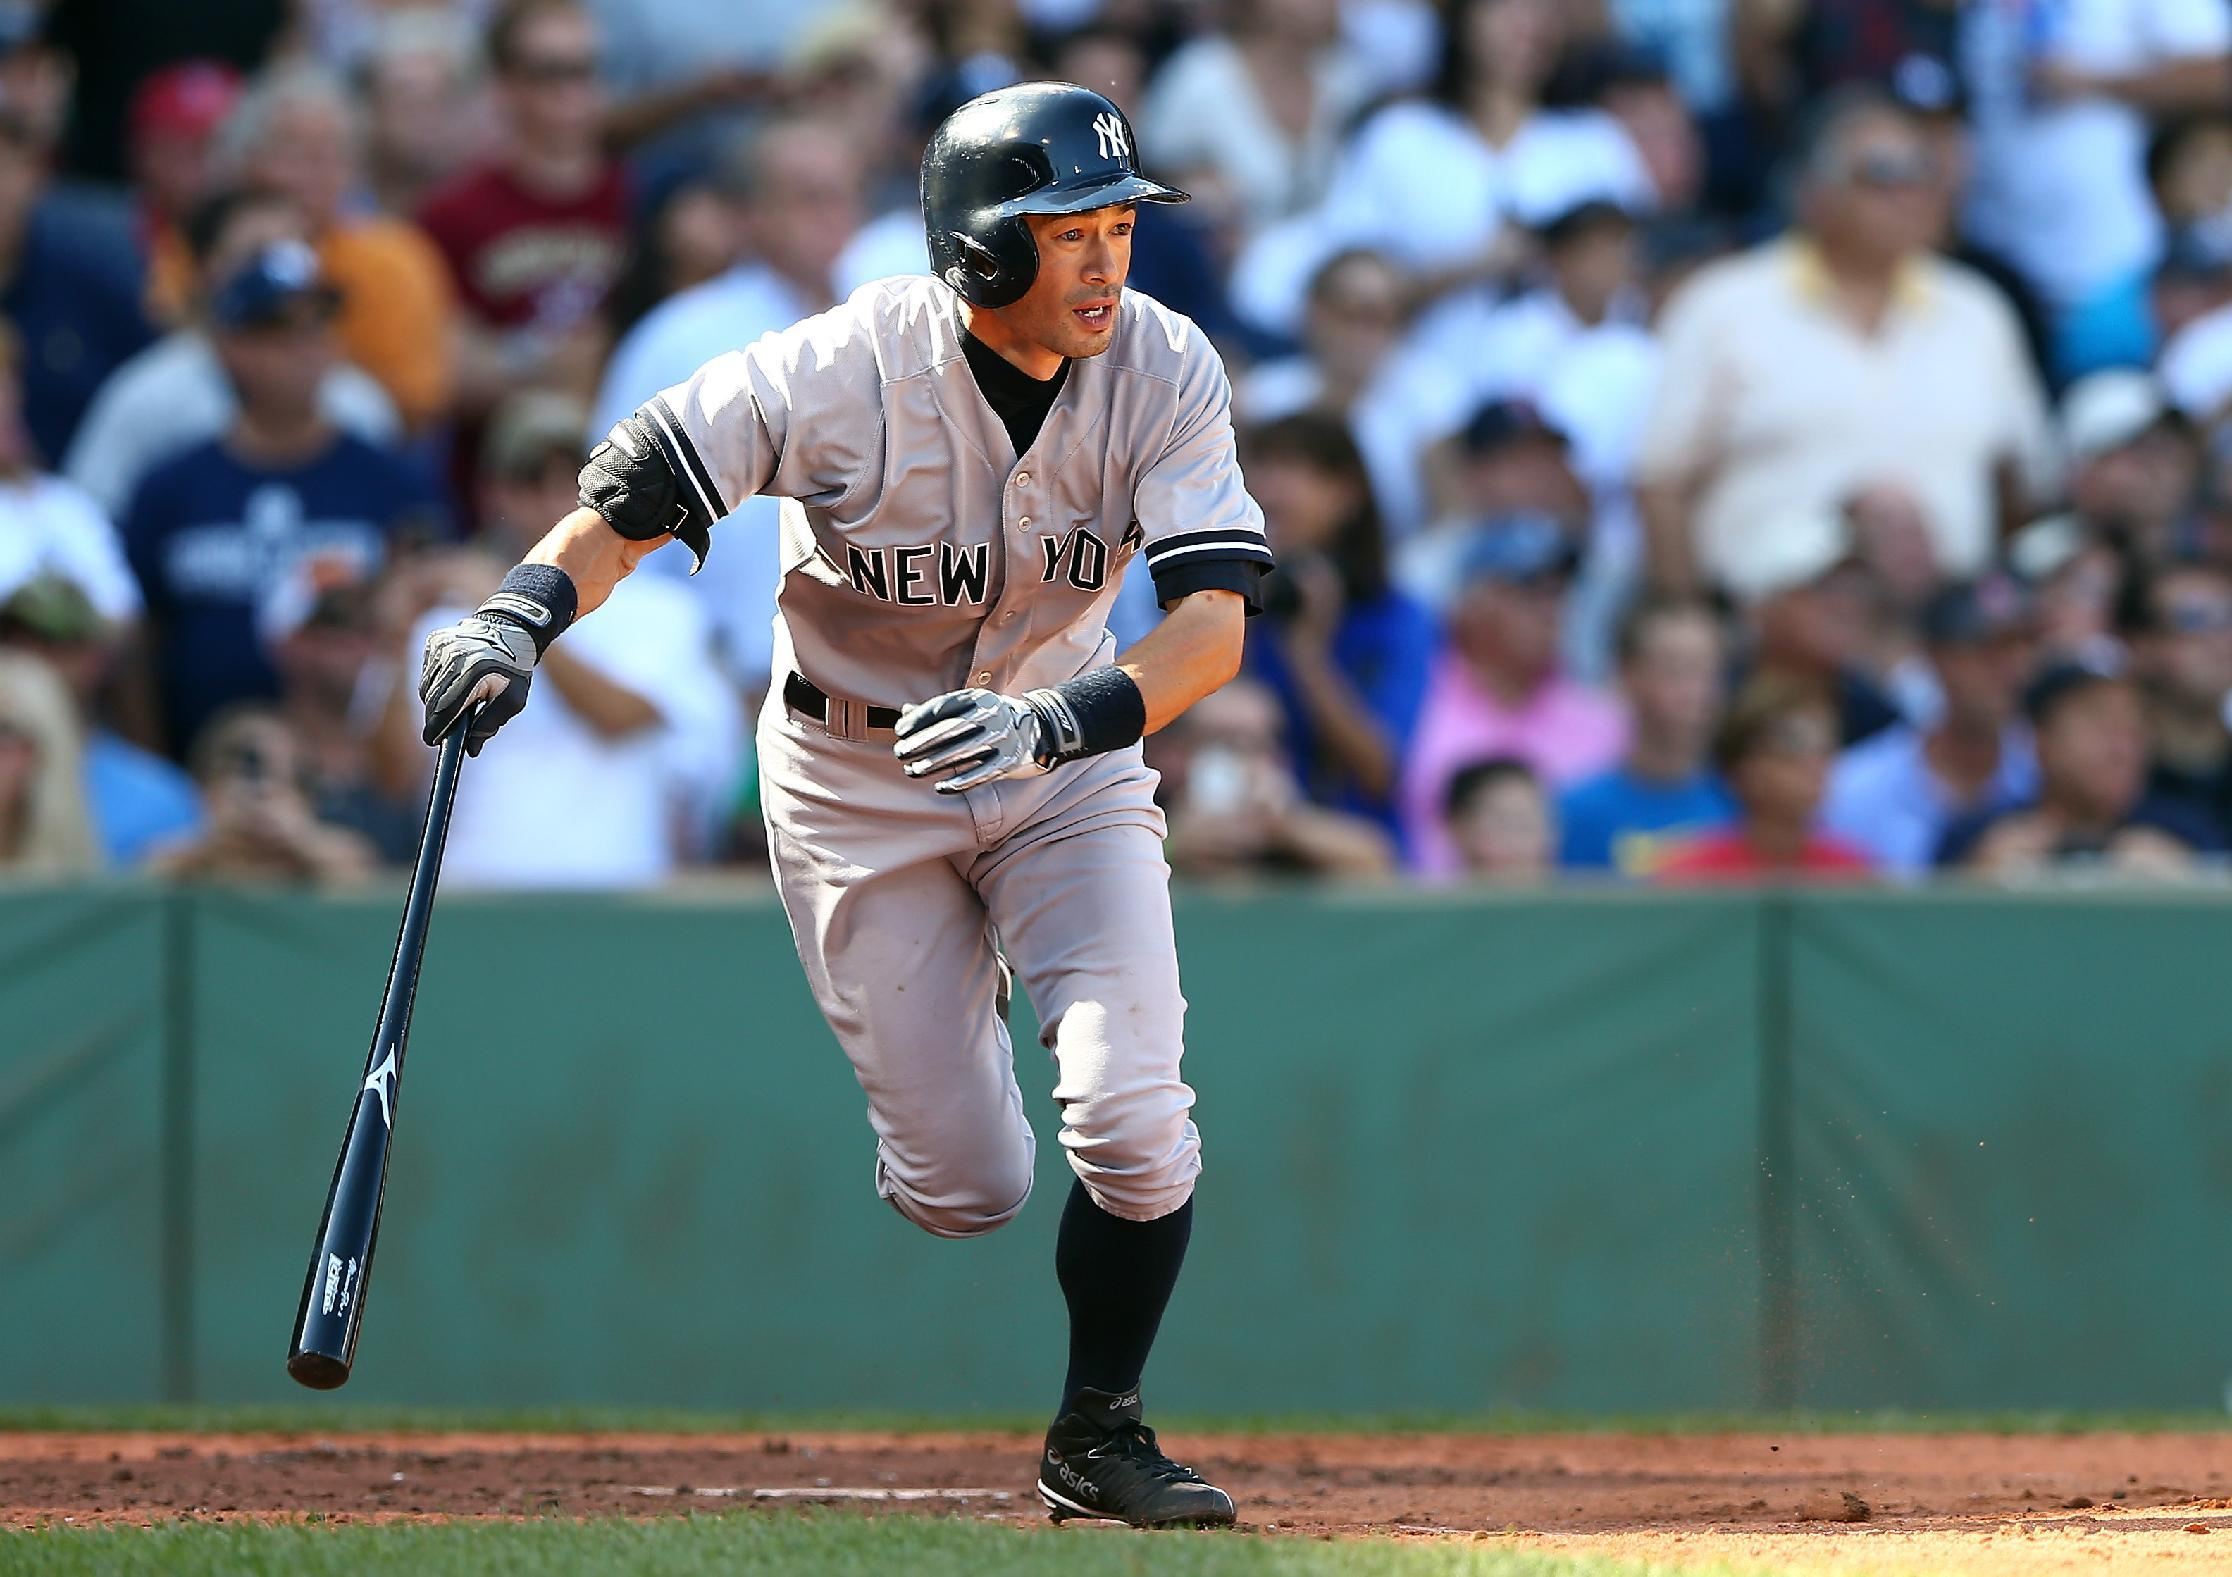 Ichiro agrees to one-year Miami deal: reports